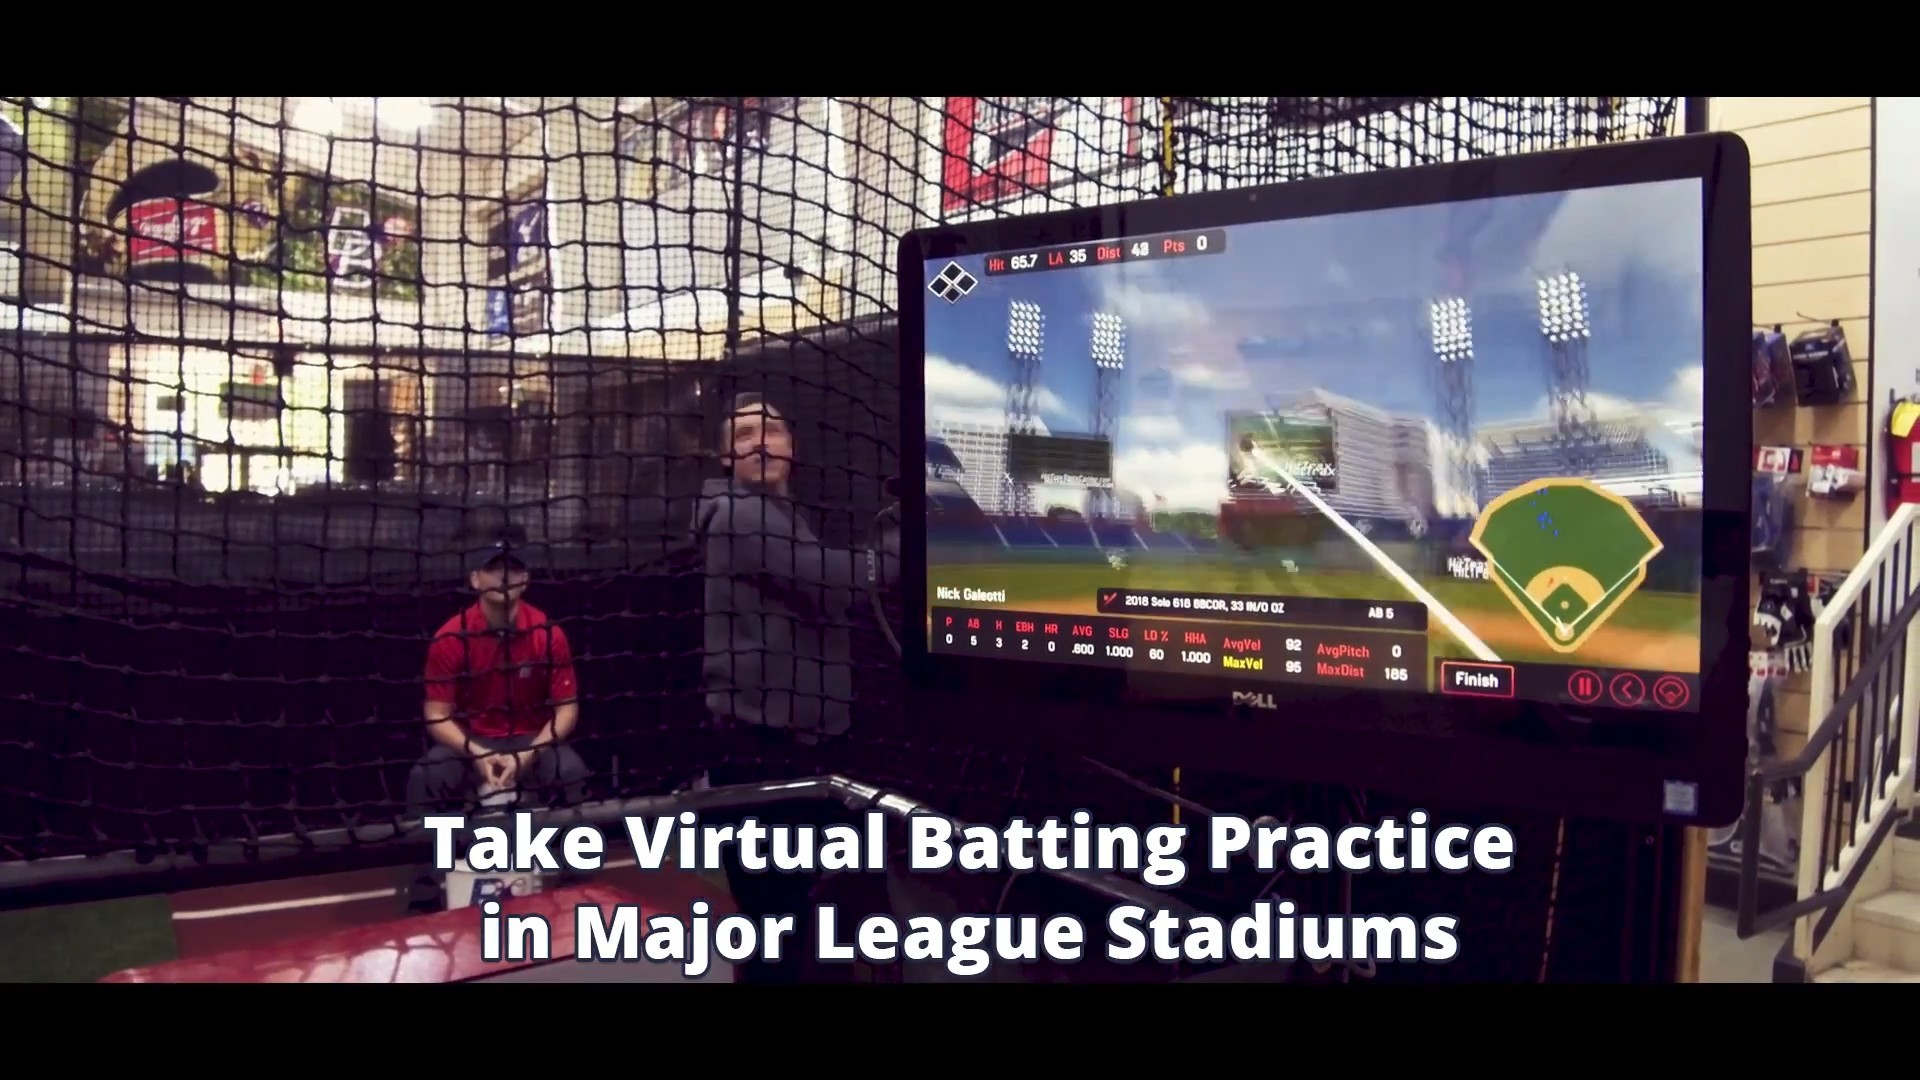 Virtual Batting Practice